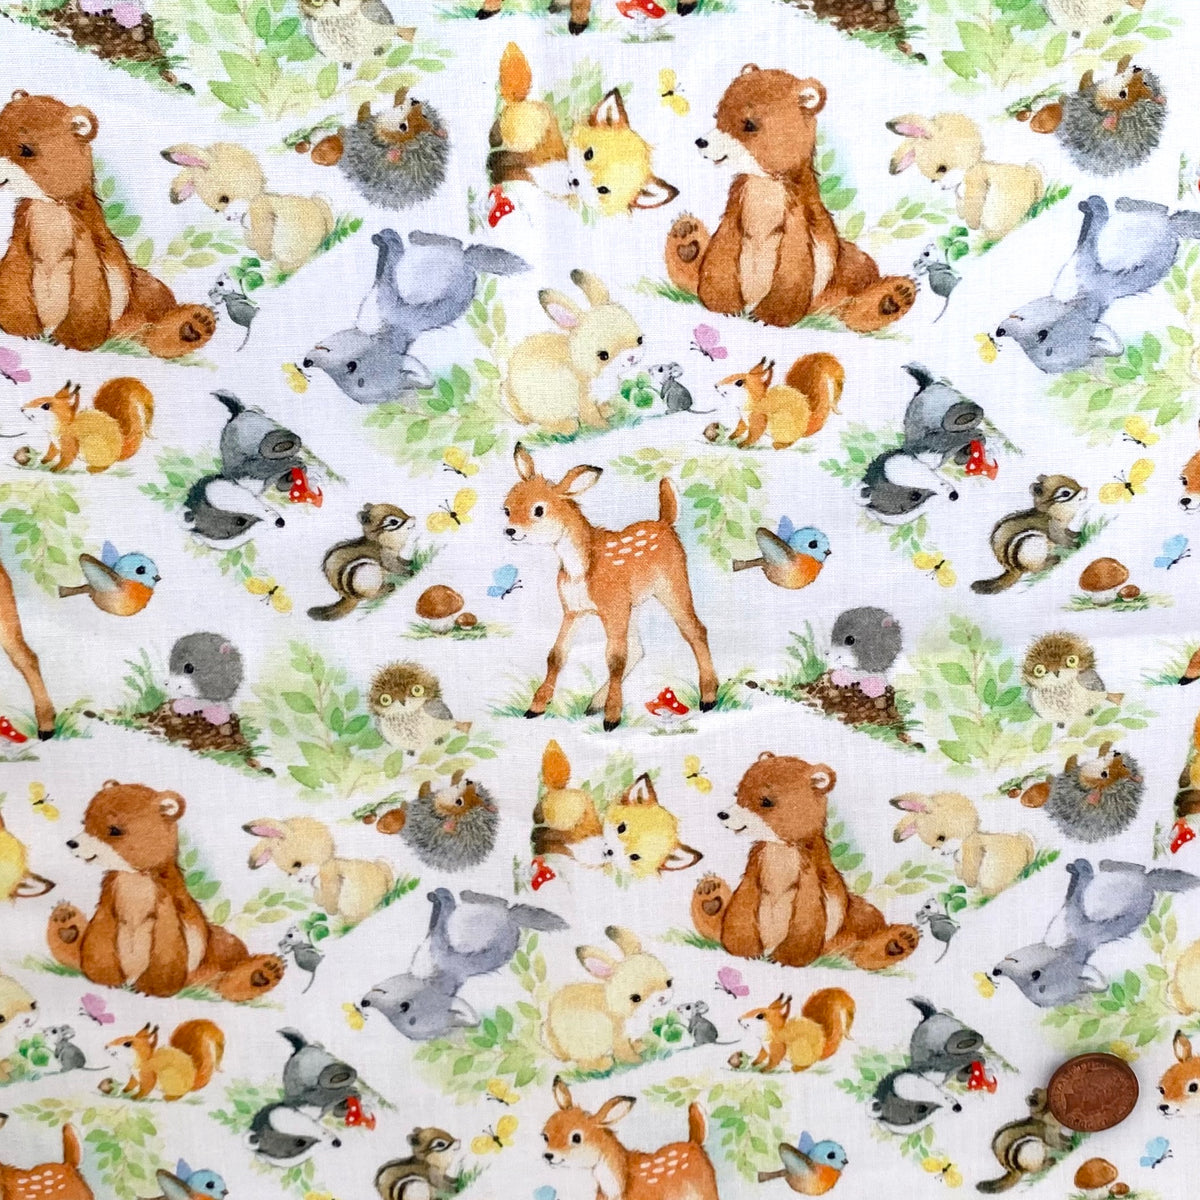 Baby woodland animals 100% cotton  fabric, sold per 1/2 metre, 137cm wide ( 58 inches )